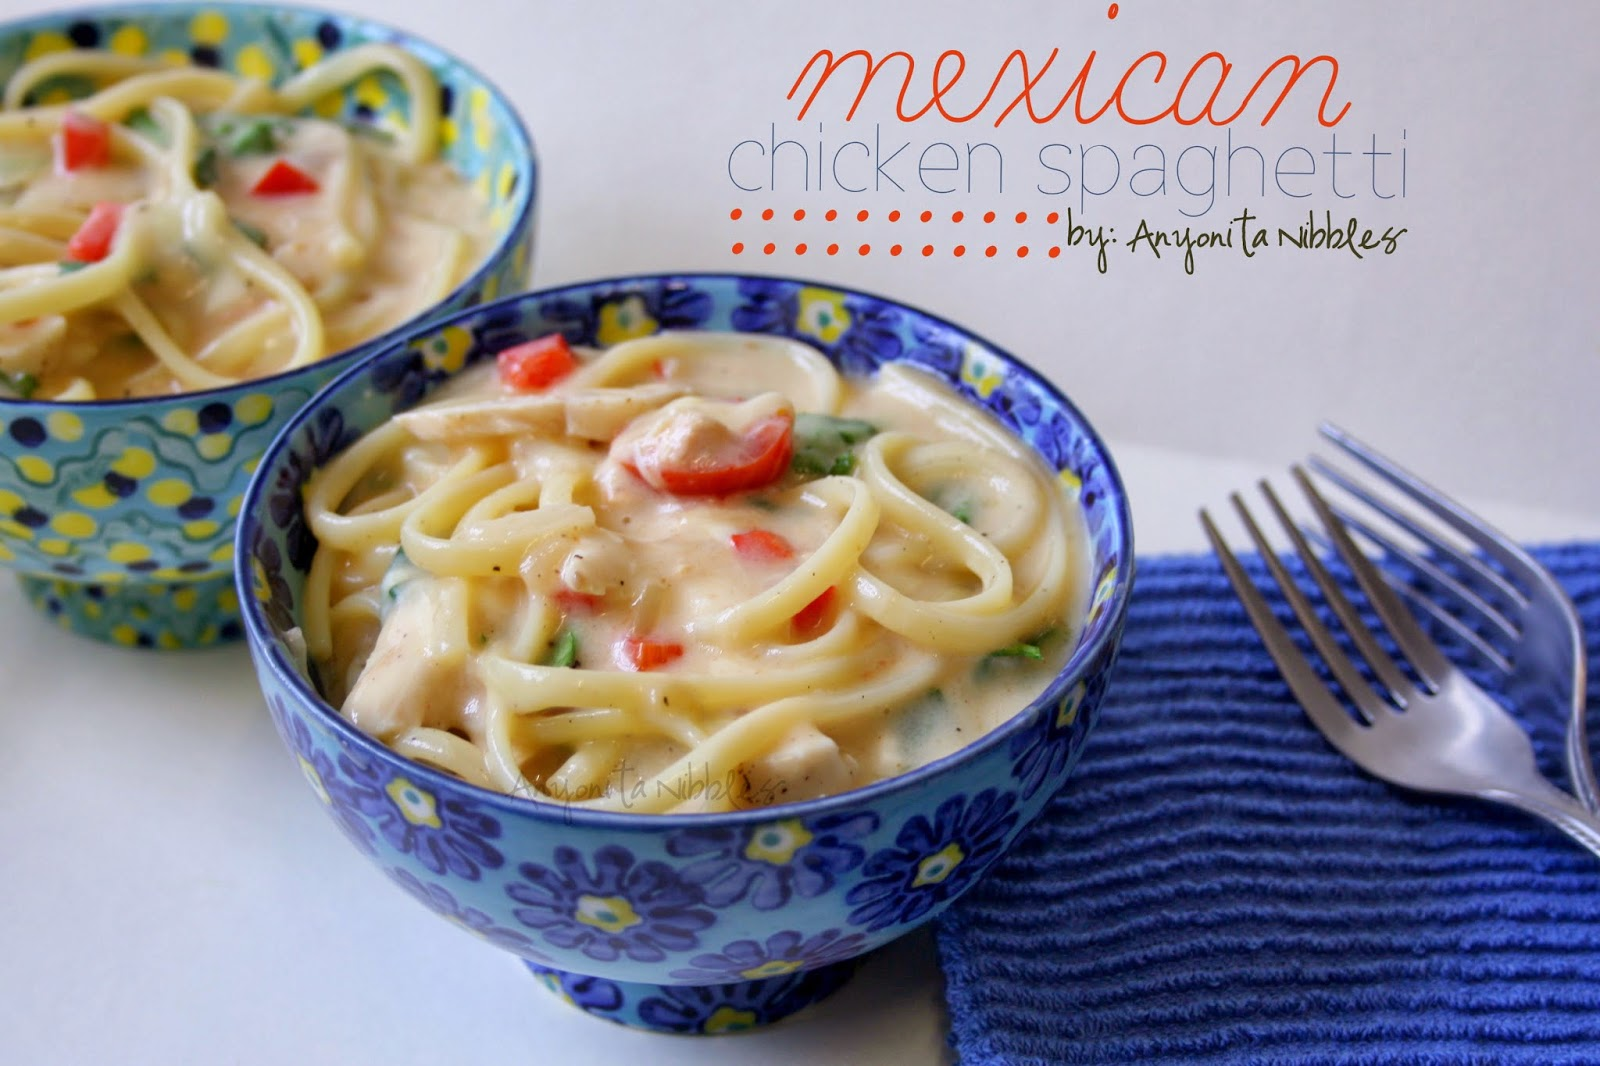 Spice up your next fiesta with this creamy Mexican Chicken Spaghetti